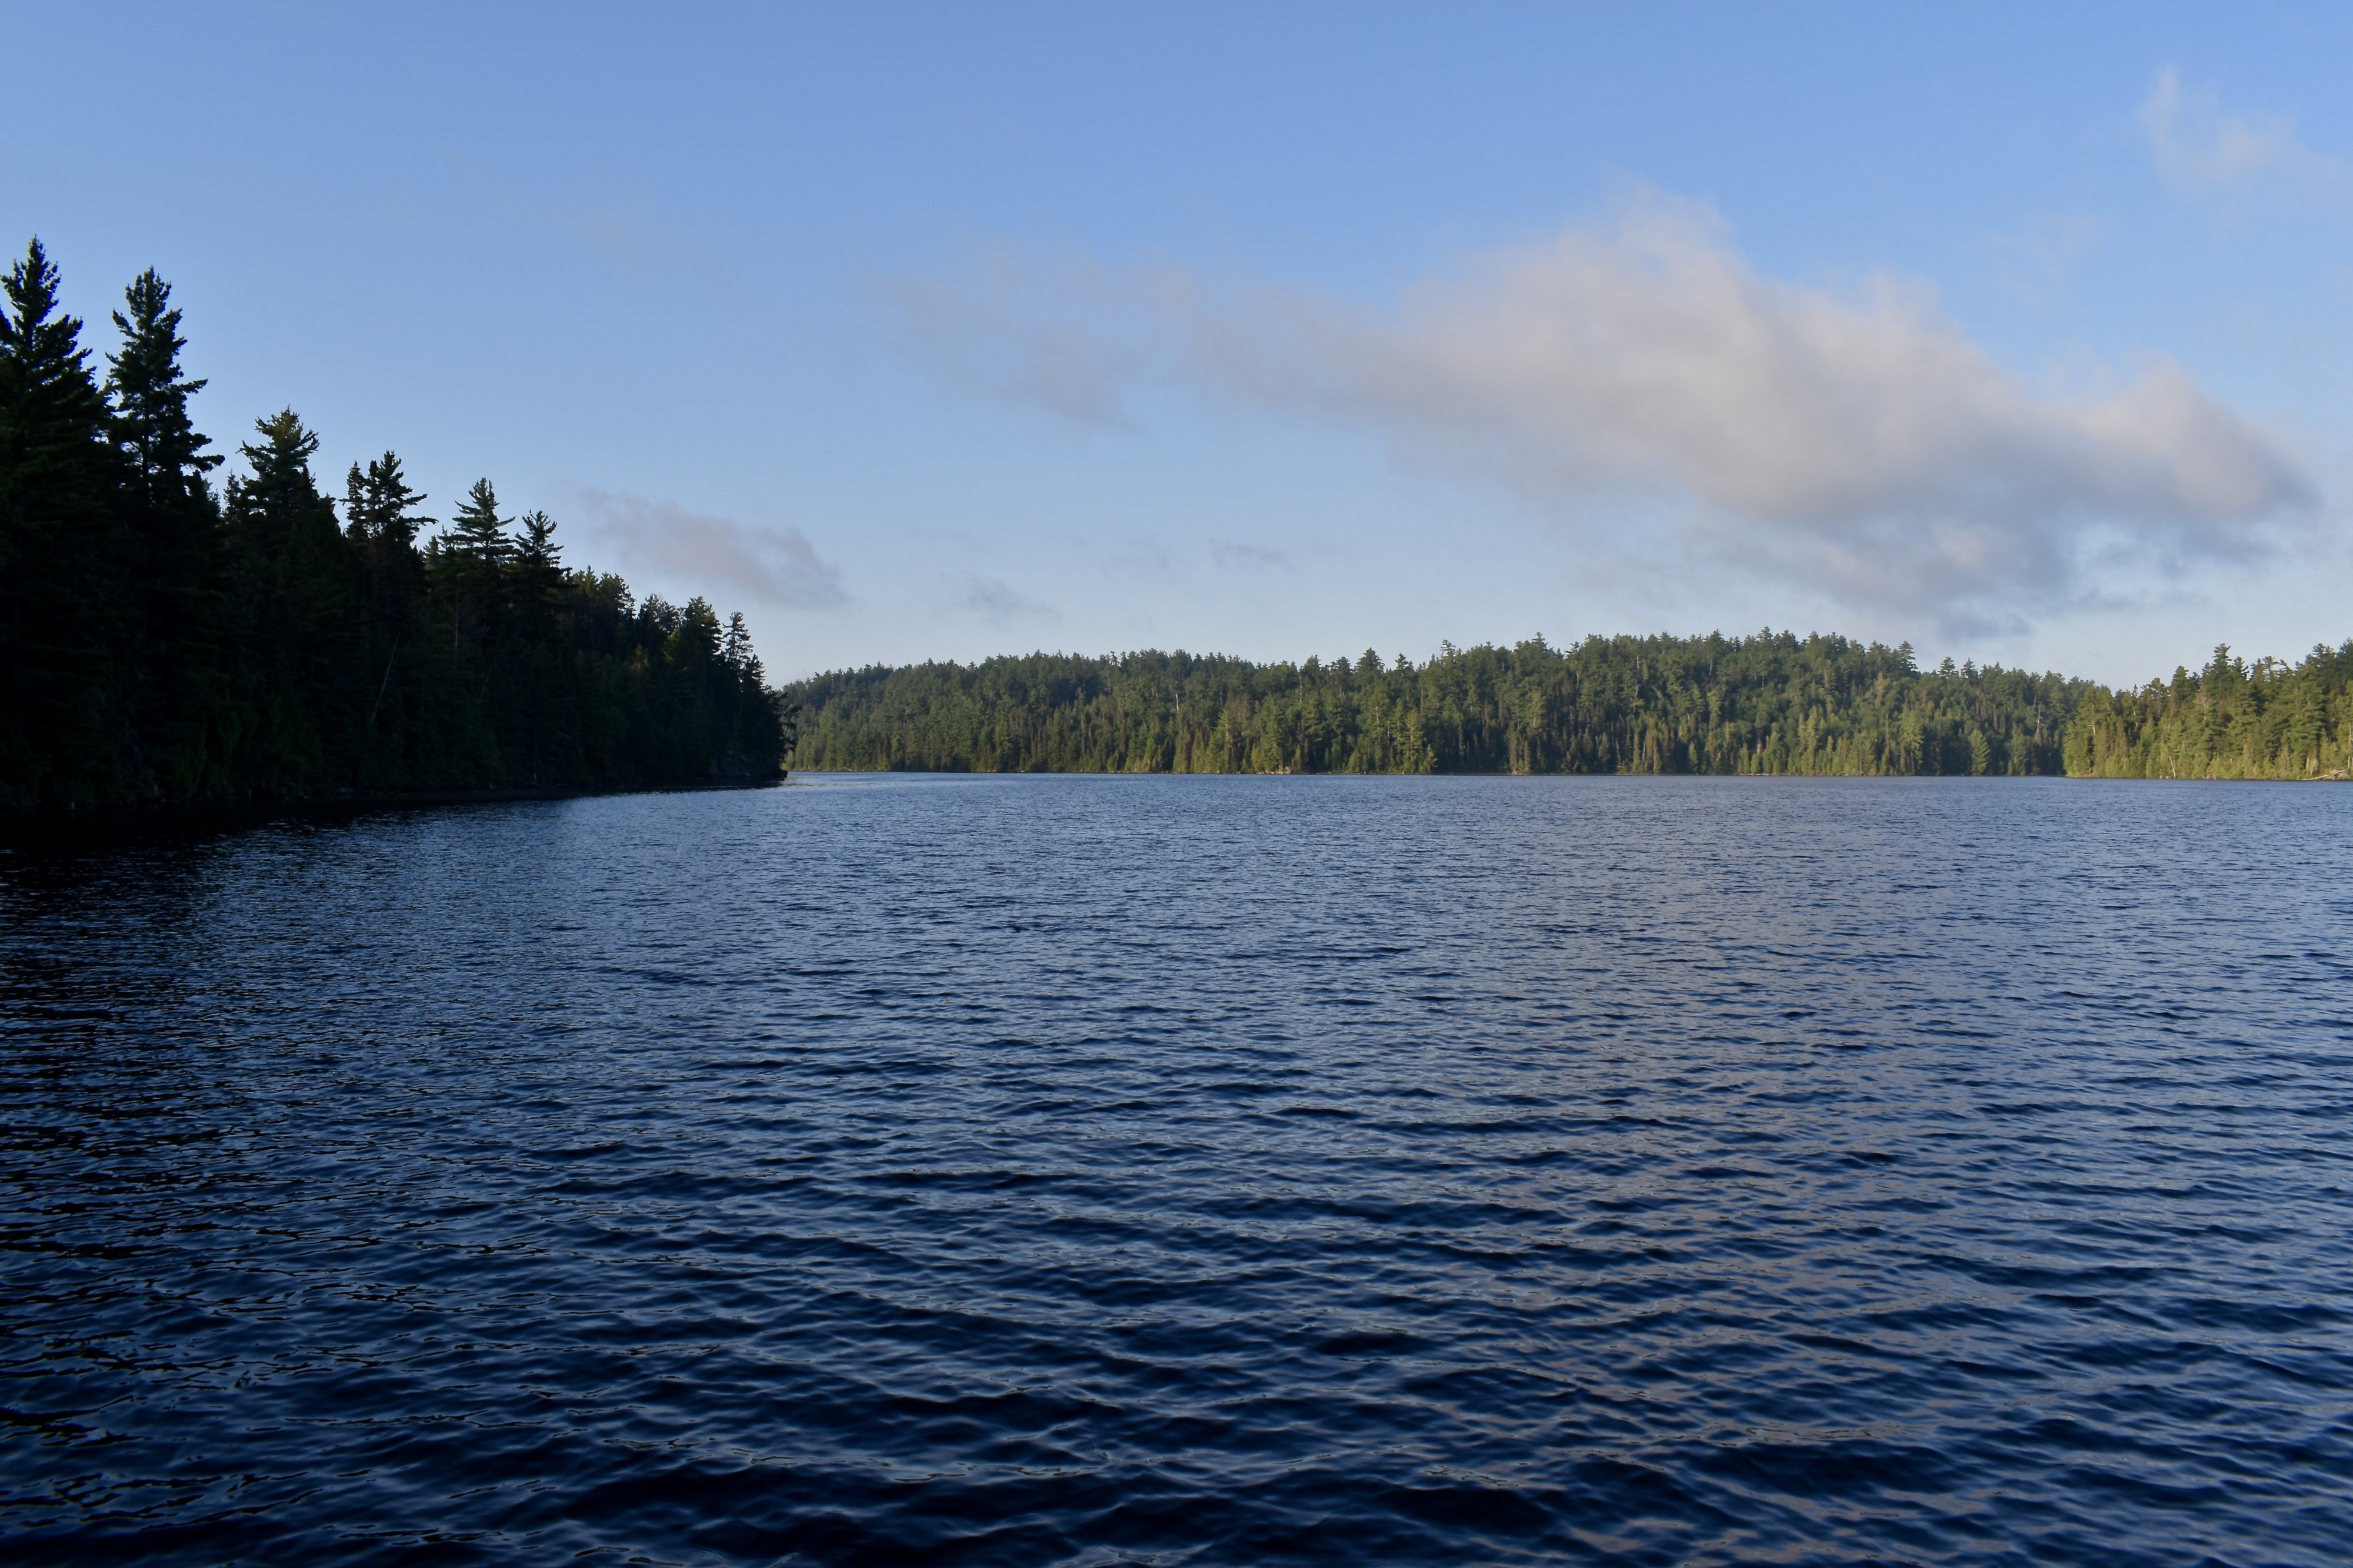 A calm lake with gentle waves, with an evergreen-covered island in the distance and a sheer wall of evergreens on the left.